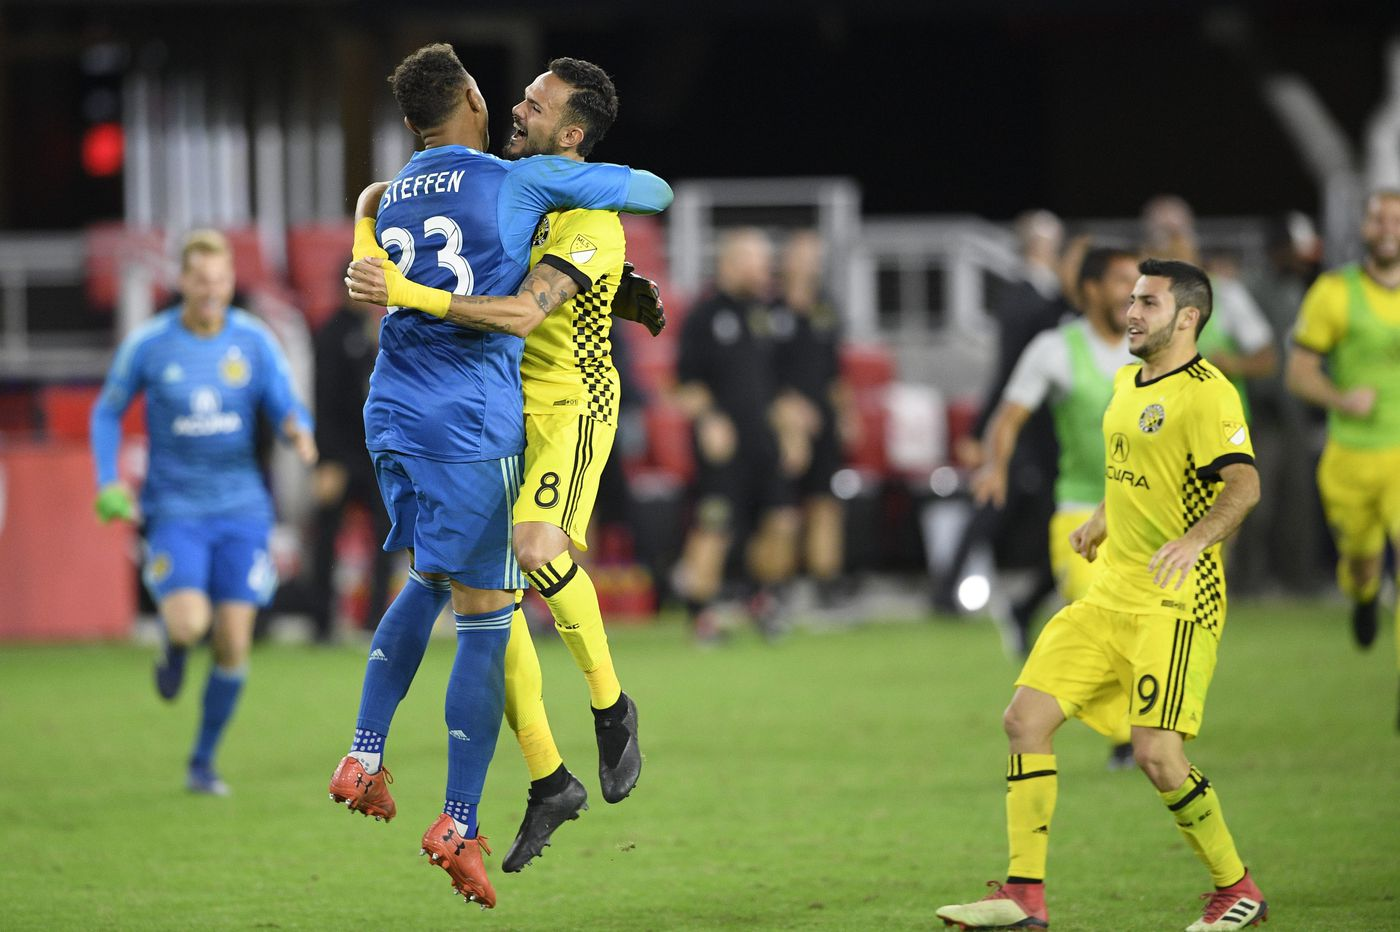 Zack Steffen's MLS playoffs heroics remind everyone why the Coatesville native is a star goalkeeper